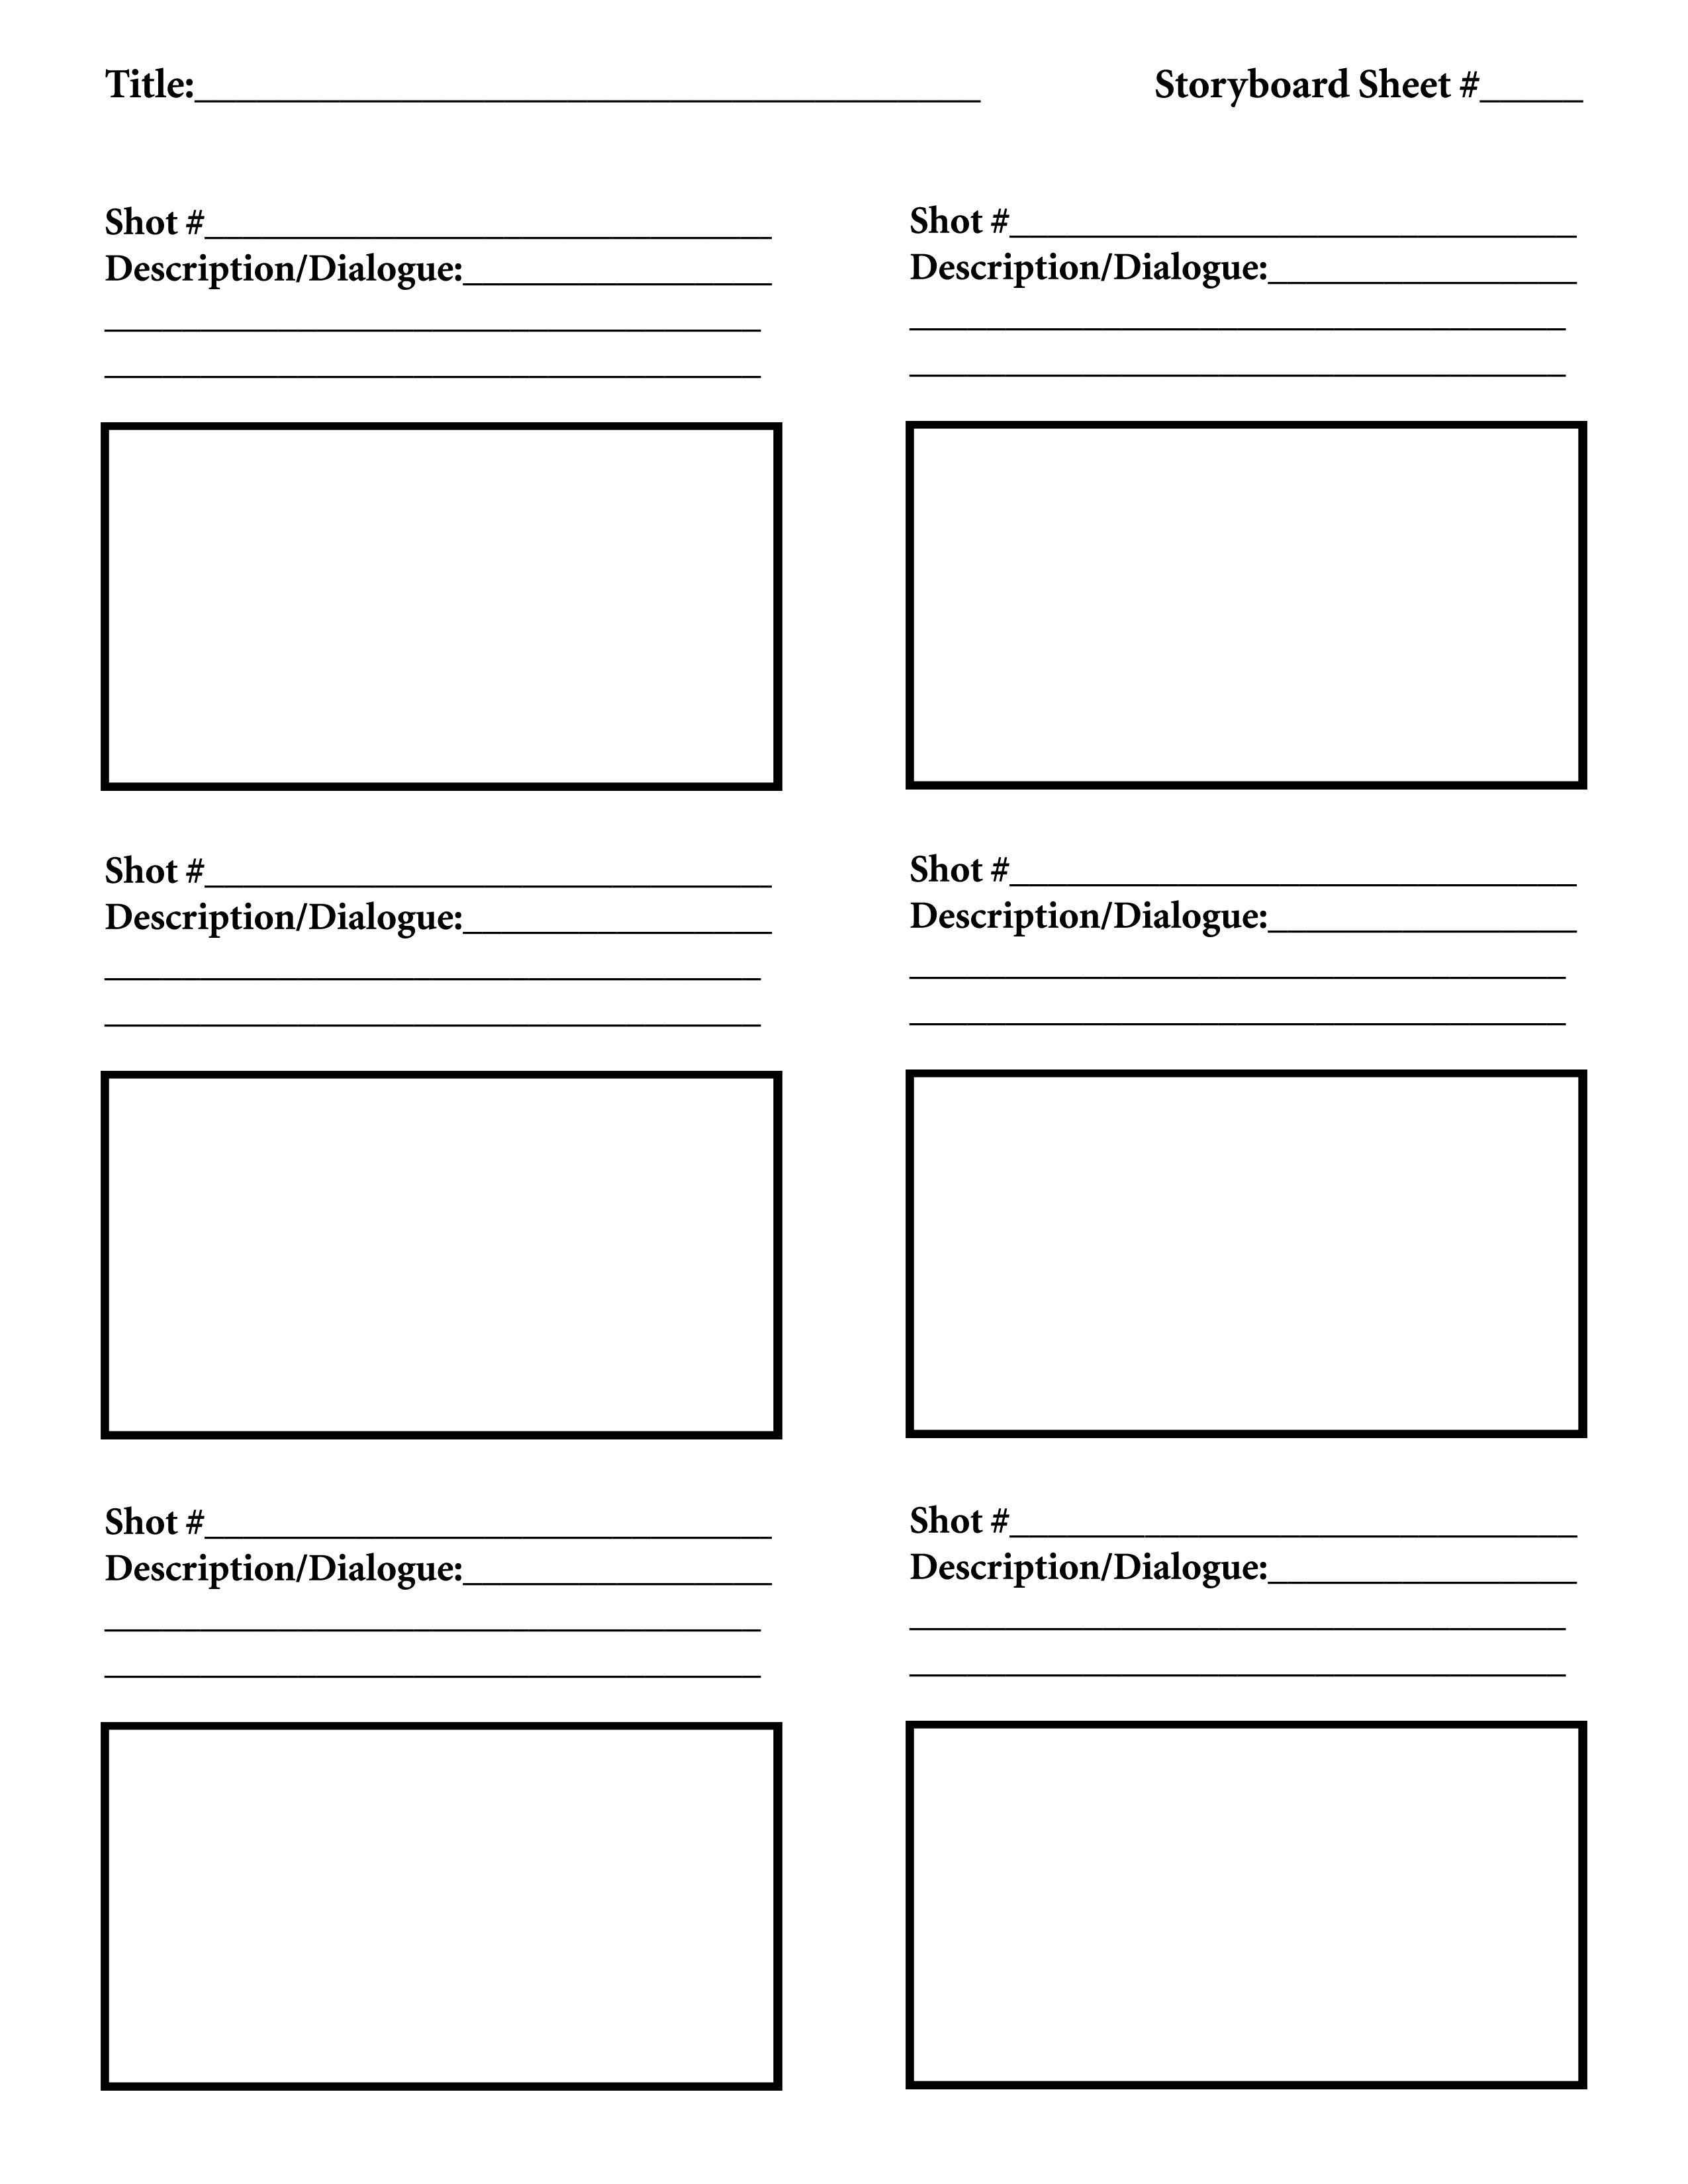 Scene planning template google search writing for Film storyboard template word